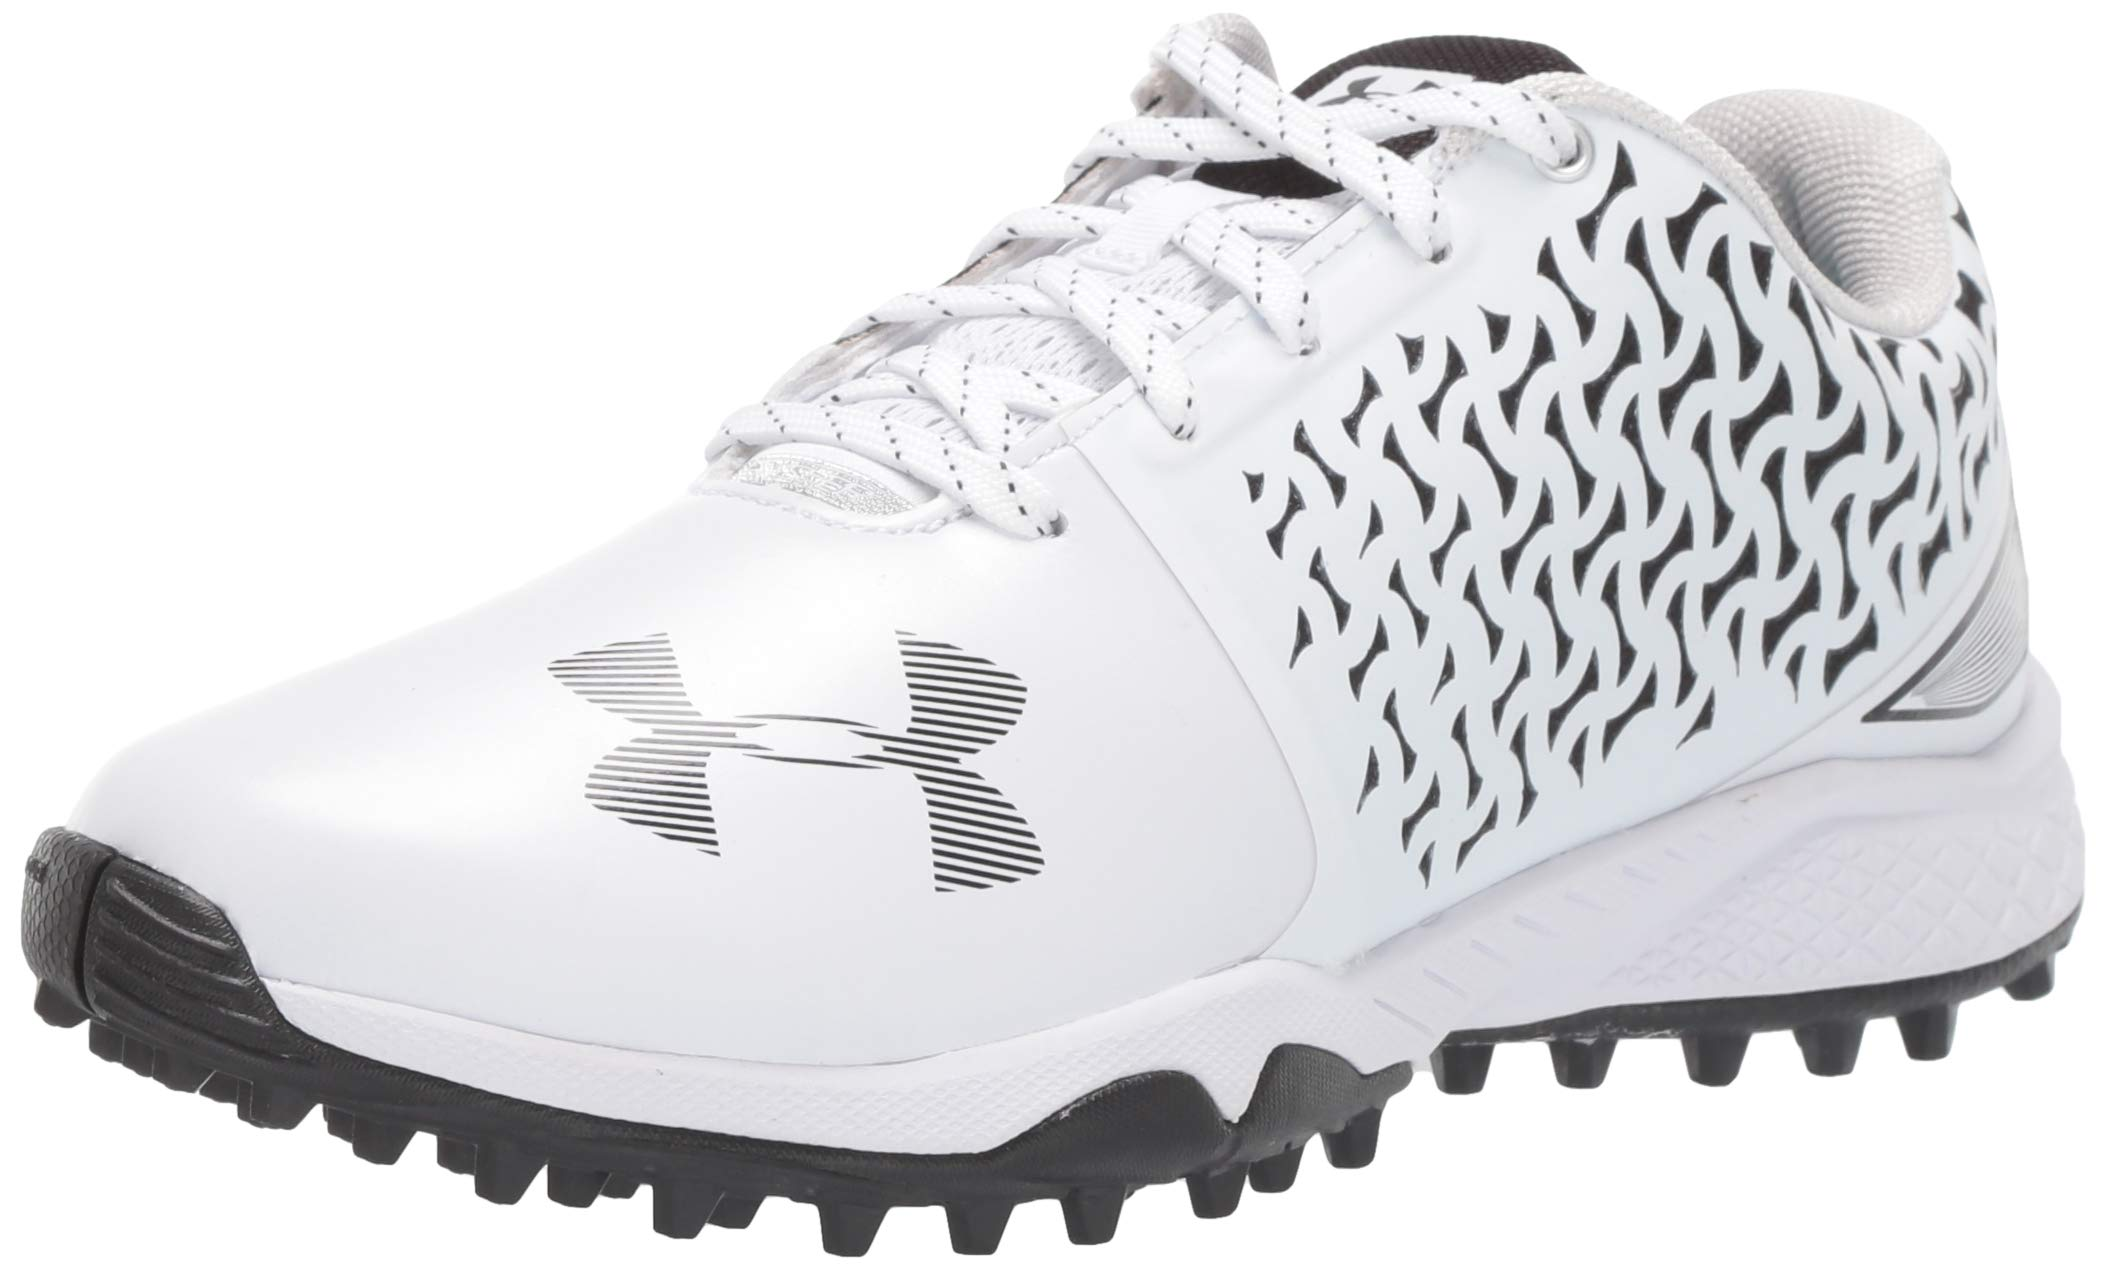 Under Armour Women's Finisher Turf Lacrosse Shoe, White (101)/Black, 7 by Under Armour